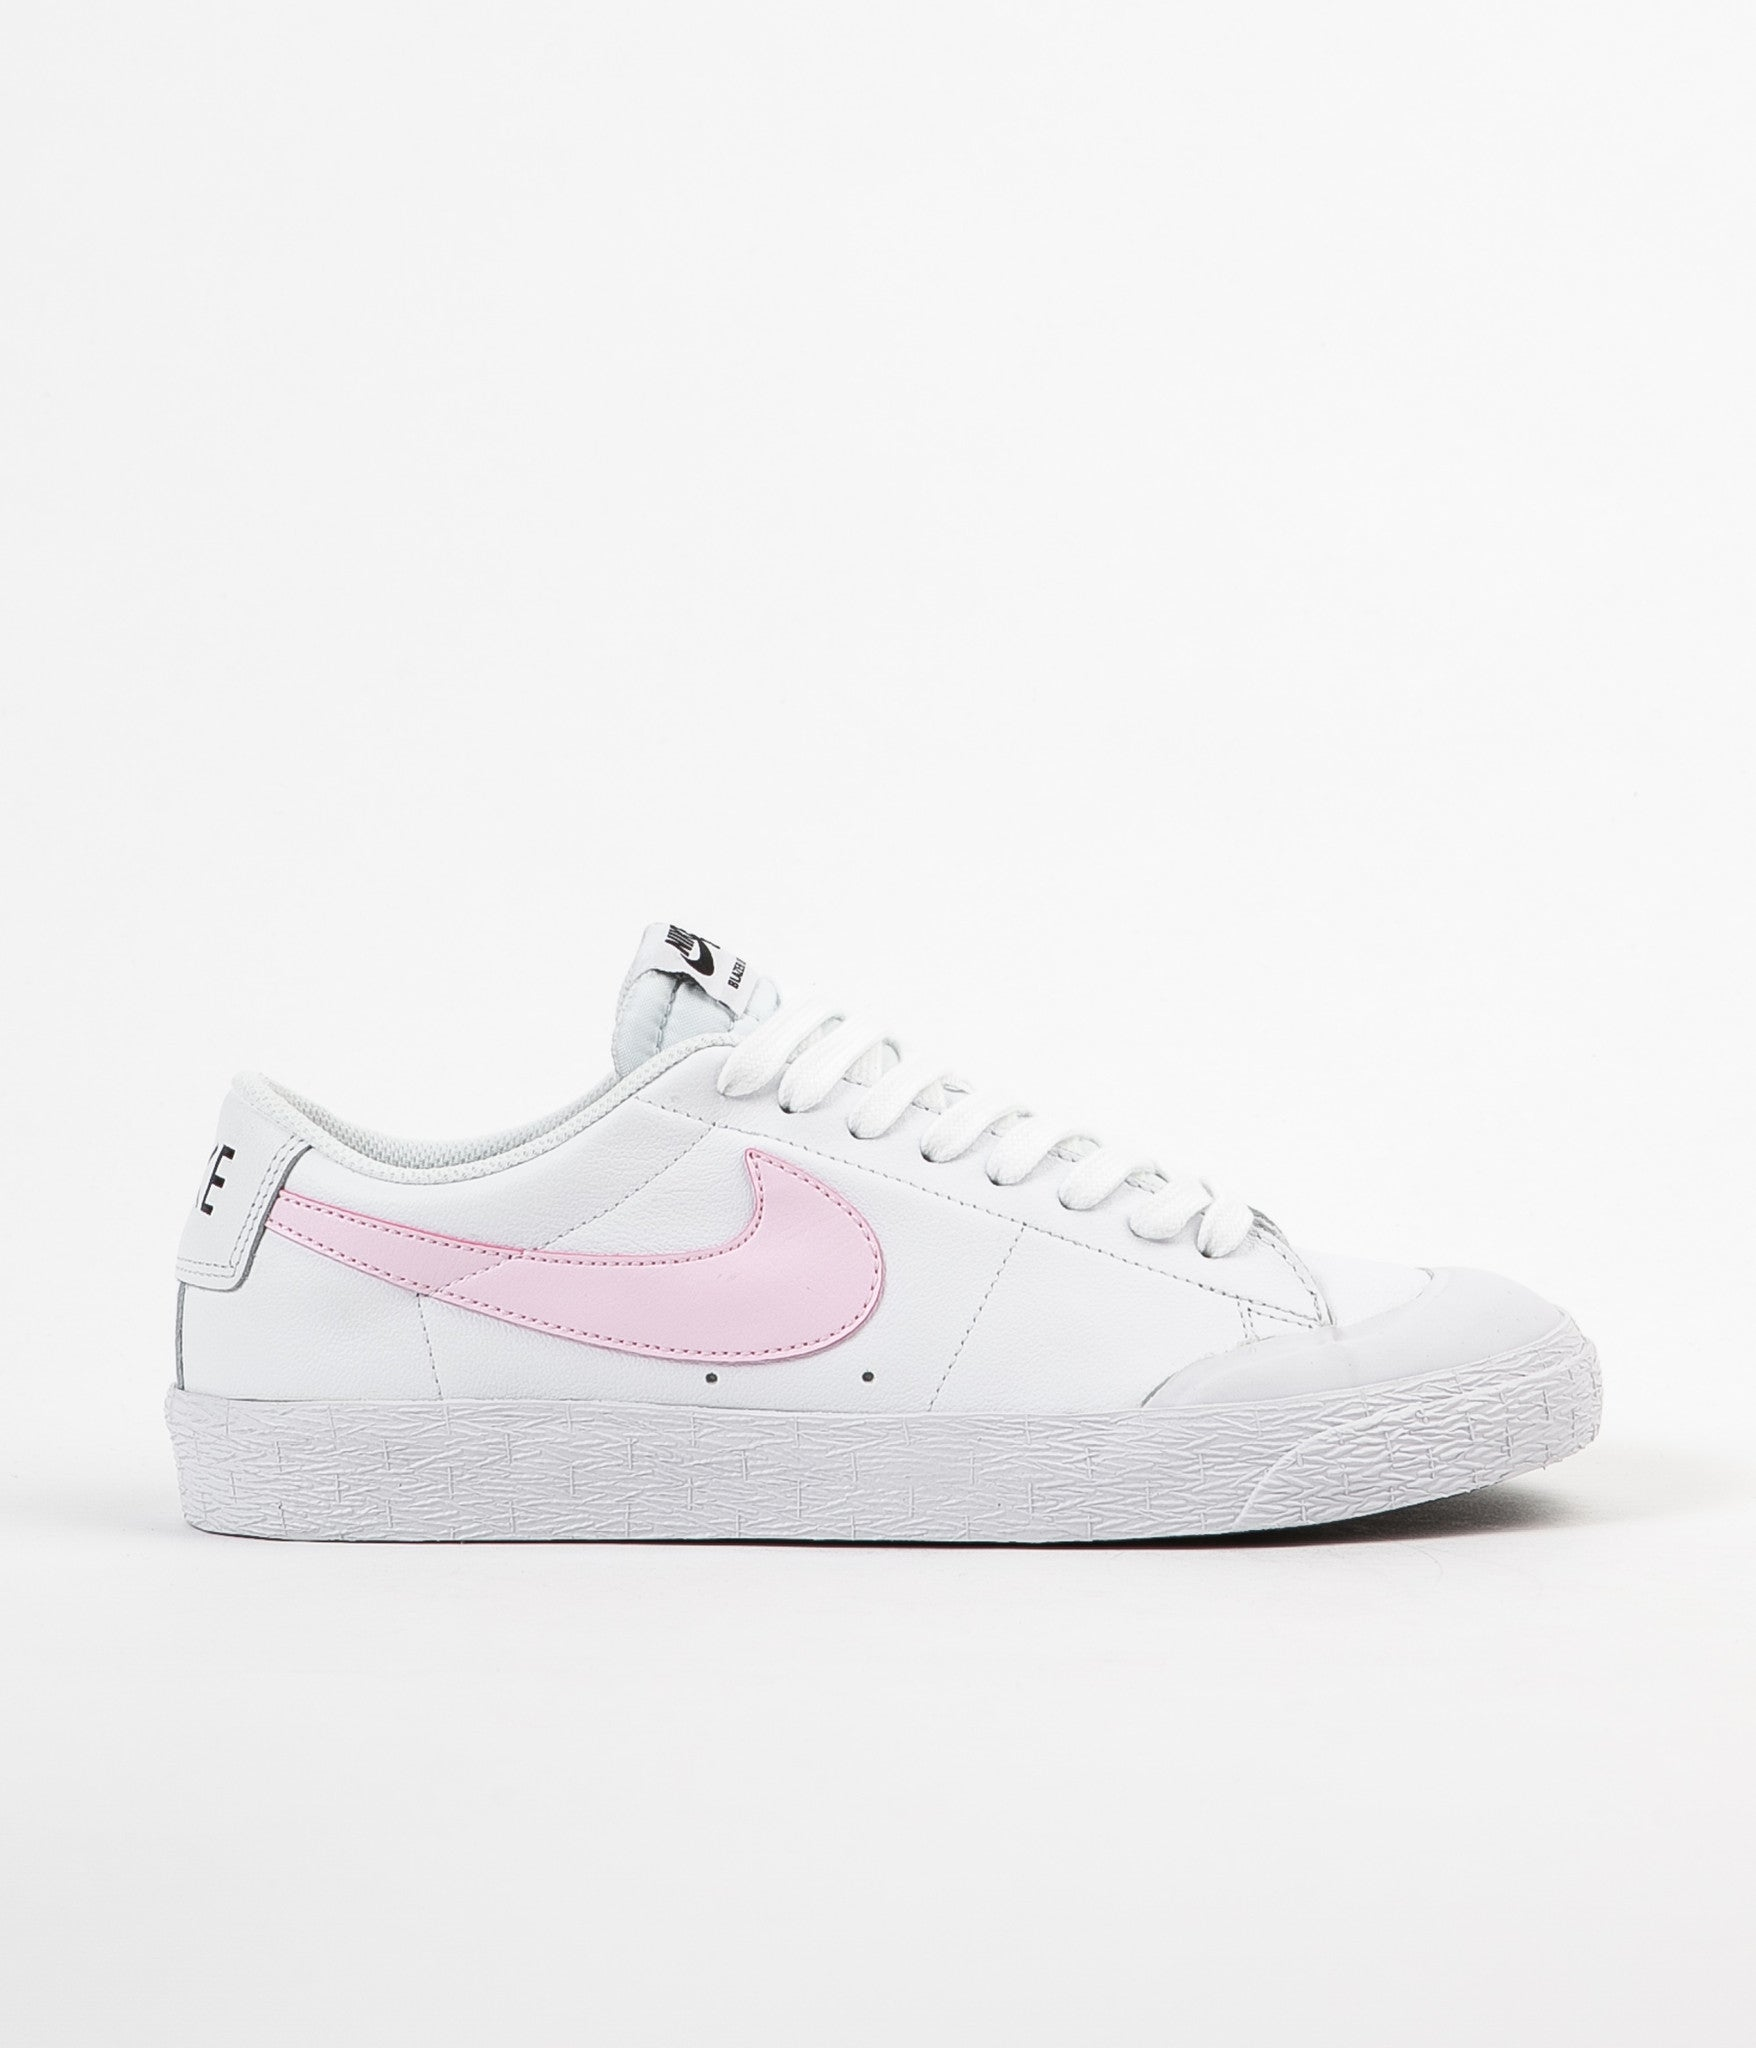 best sneakers 577d1 5fcfe Nike SB Blazer Low XT Shoes - White   Prism Pink - Black - White